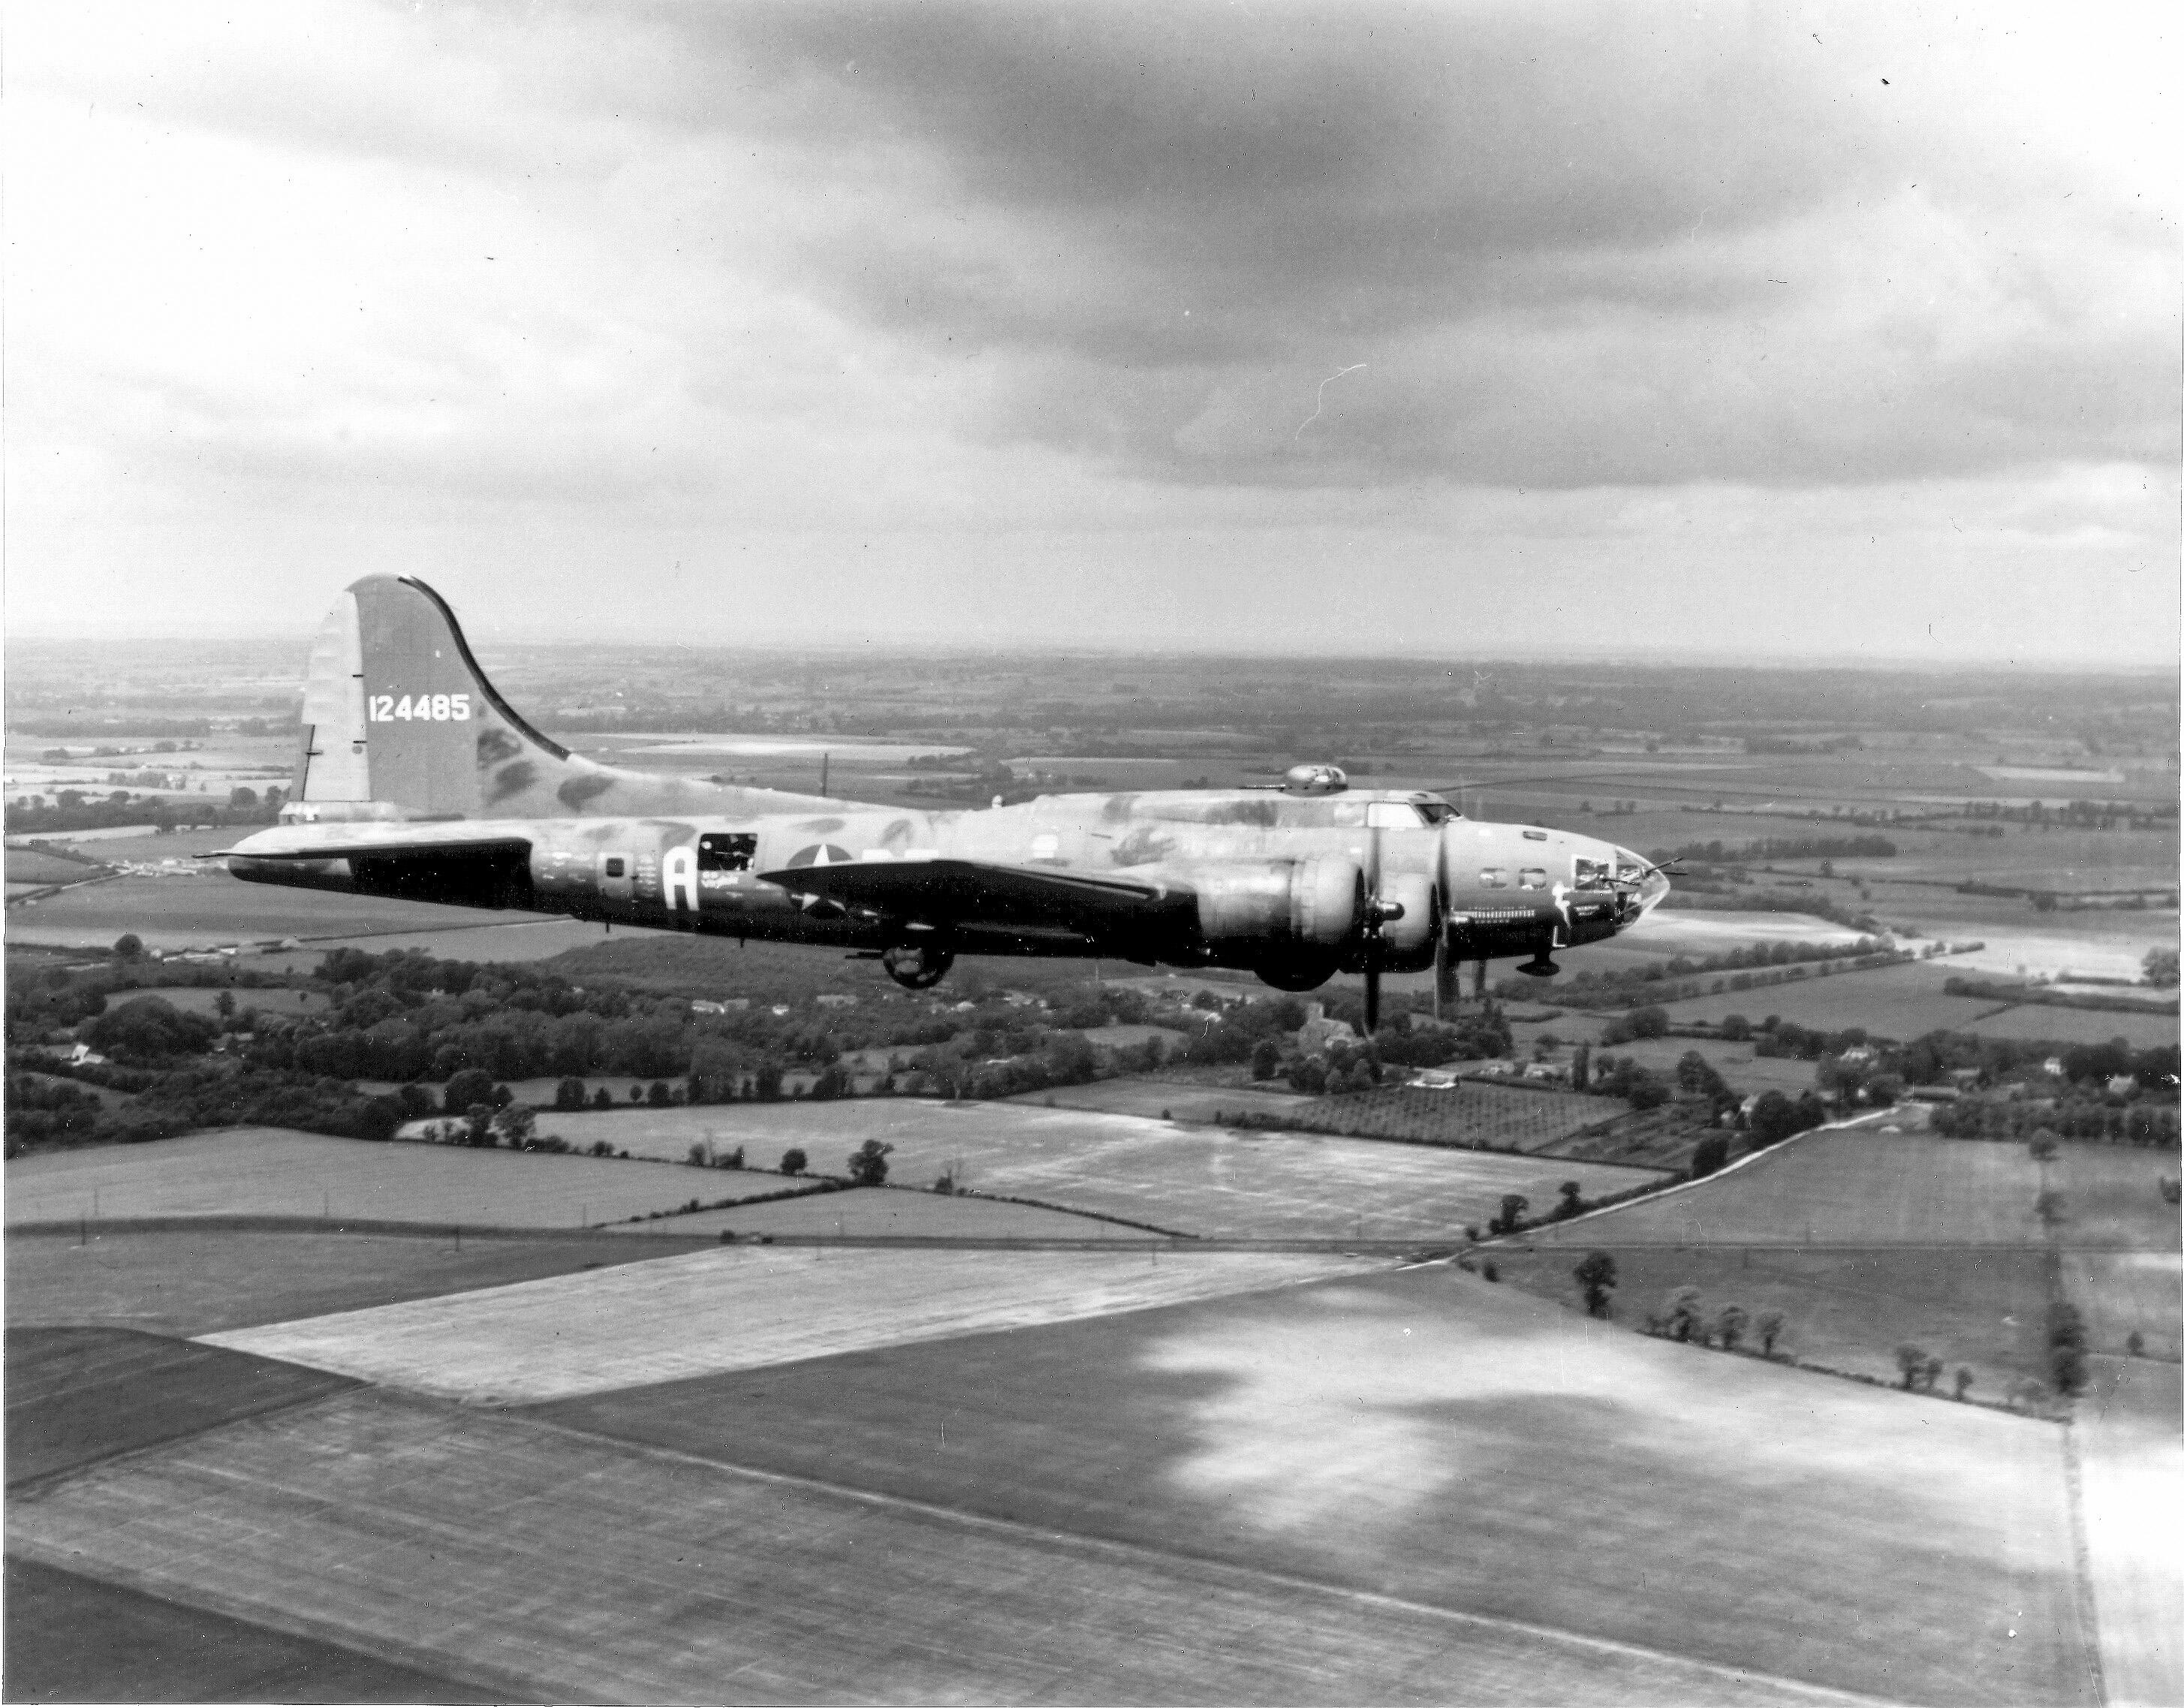 The most famous B-17